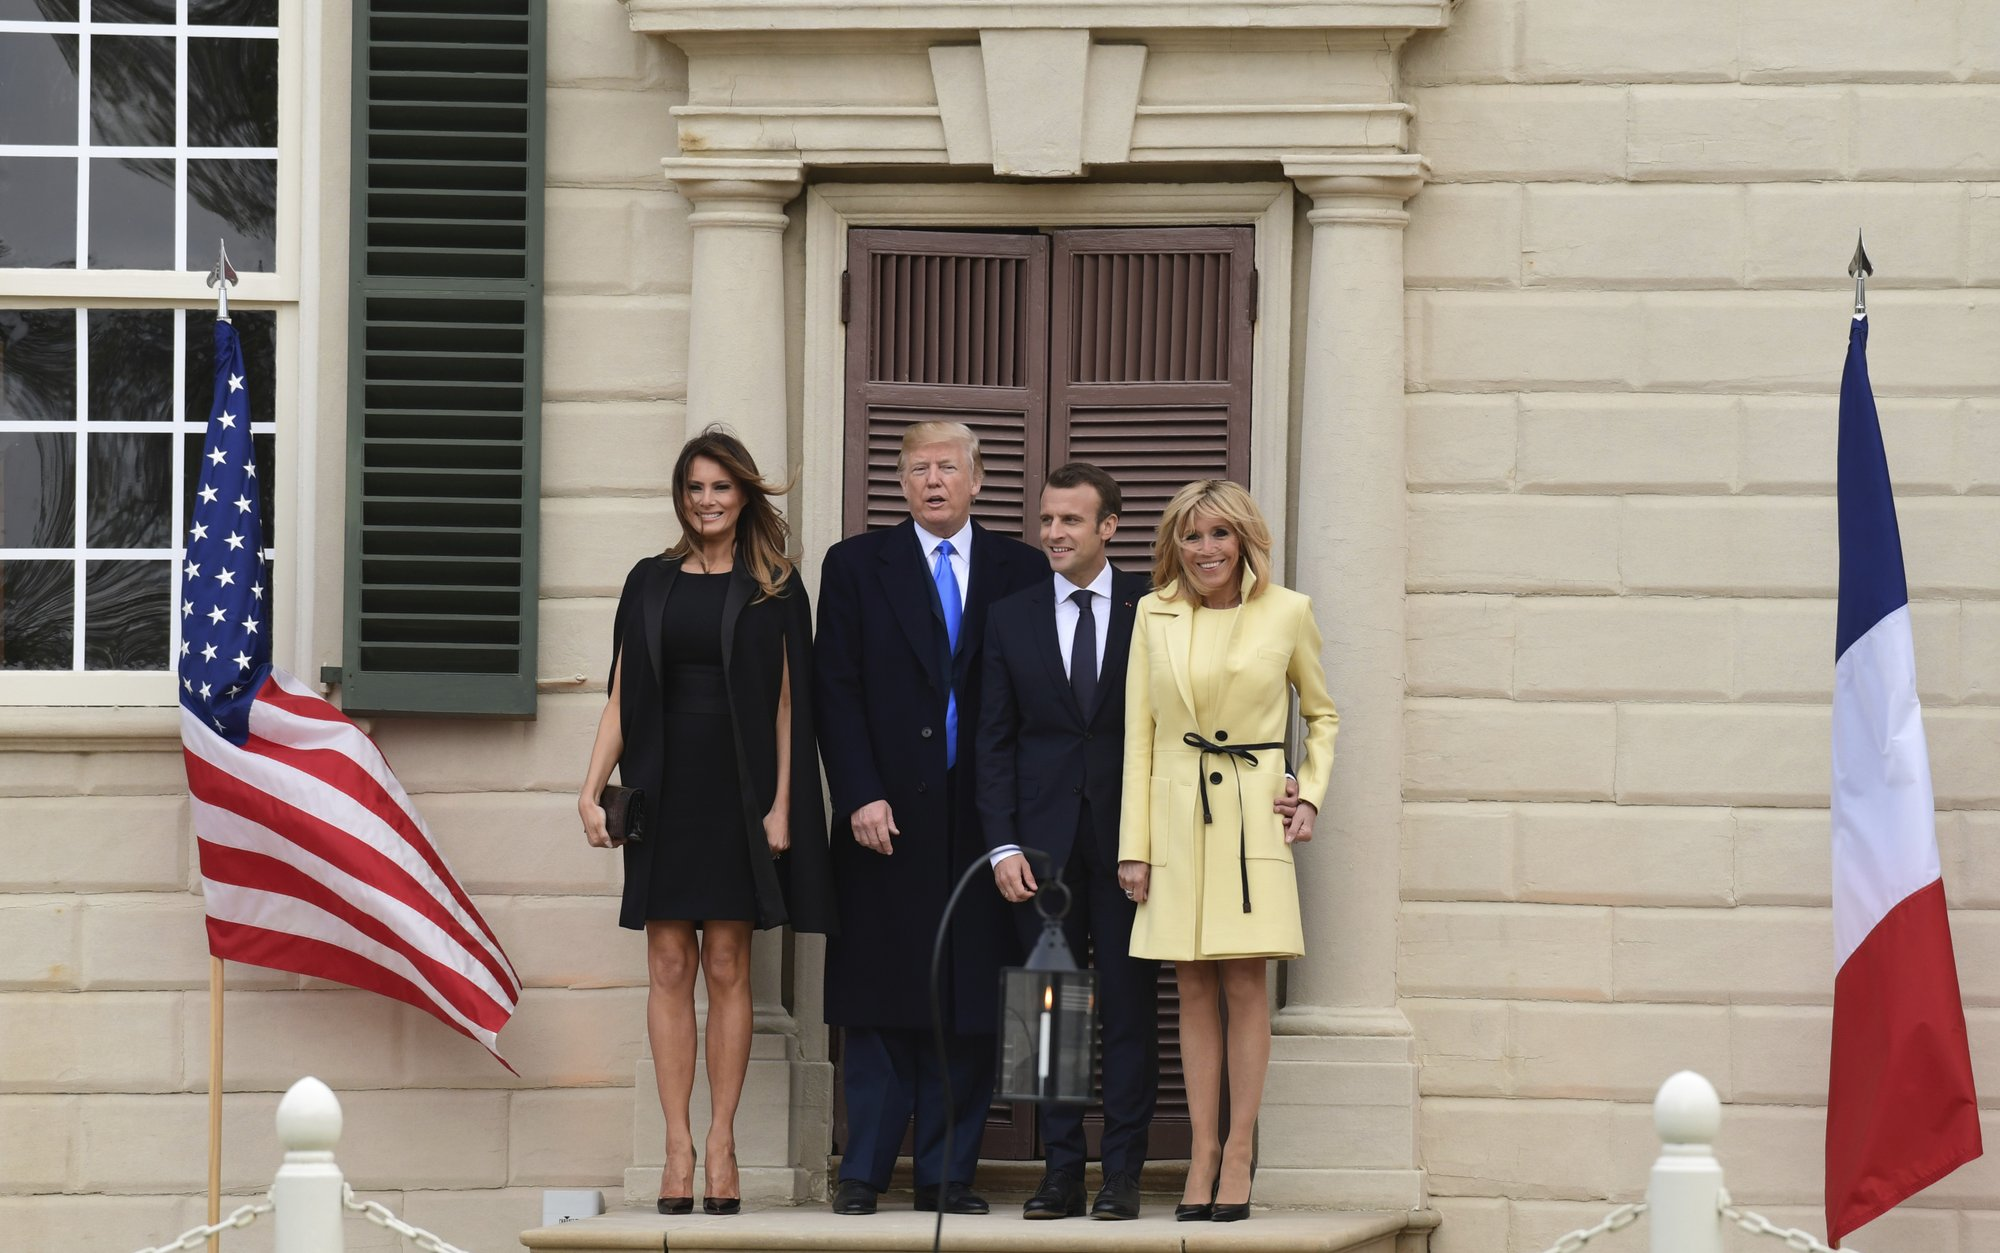 The Latest: Trump, Macron return to White House after dinner